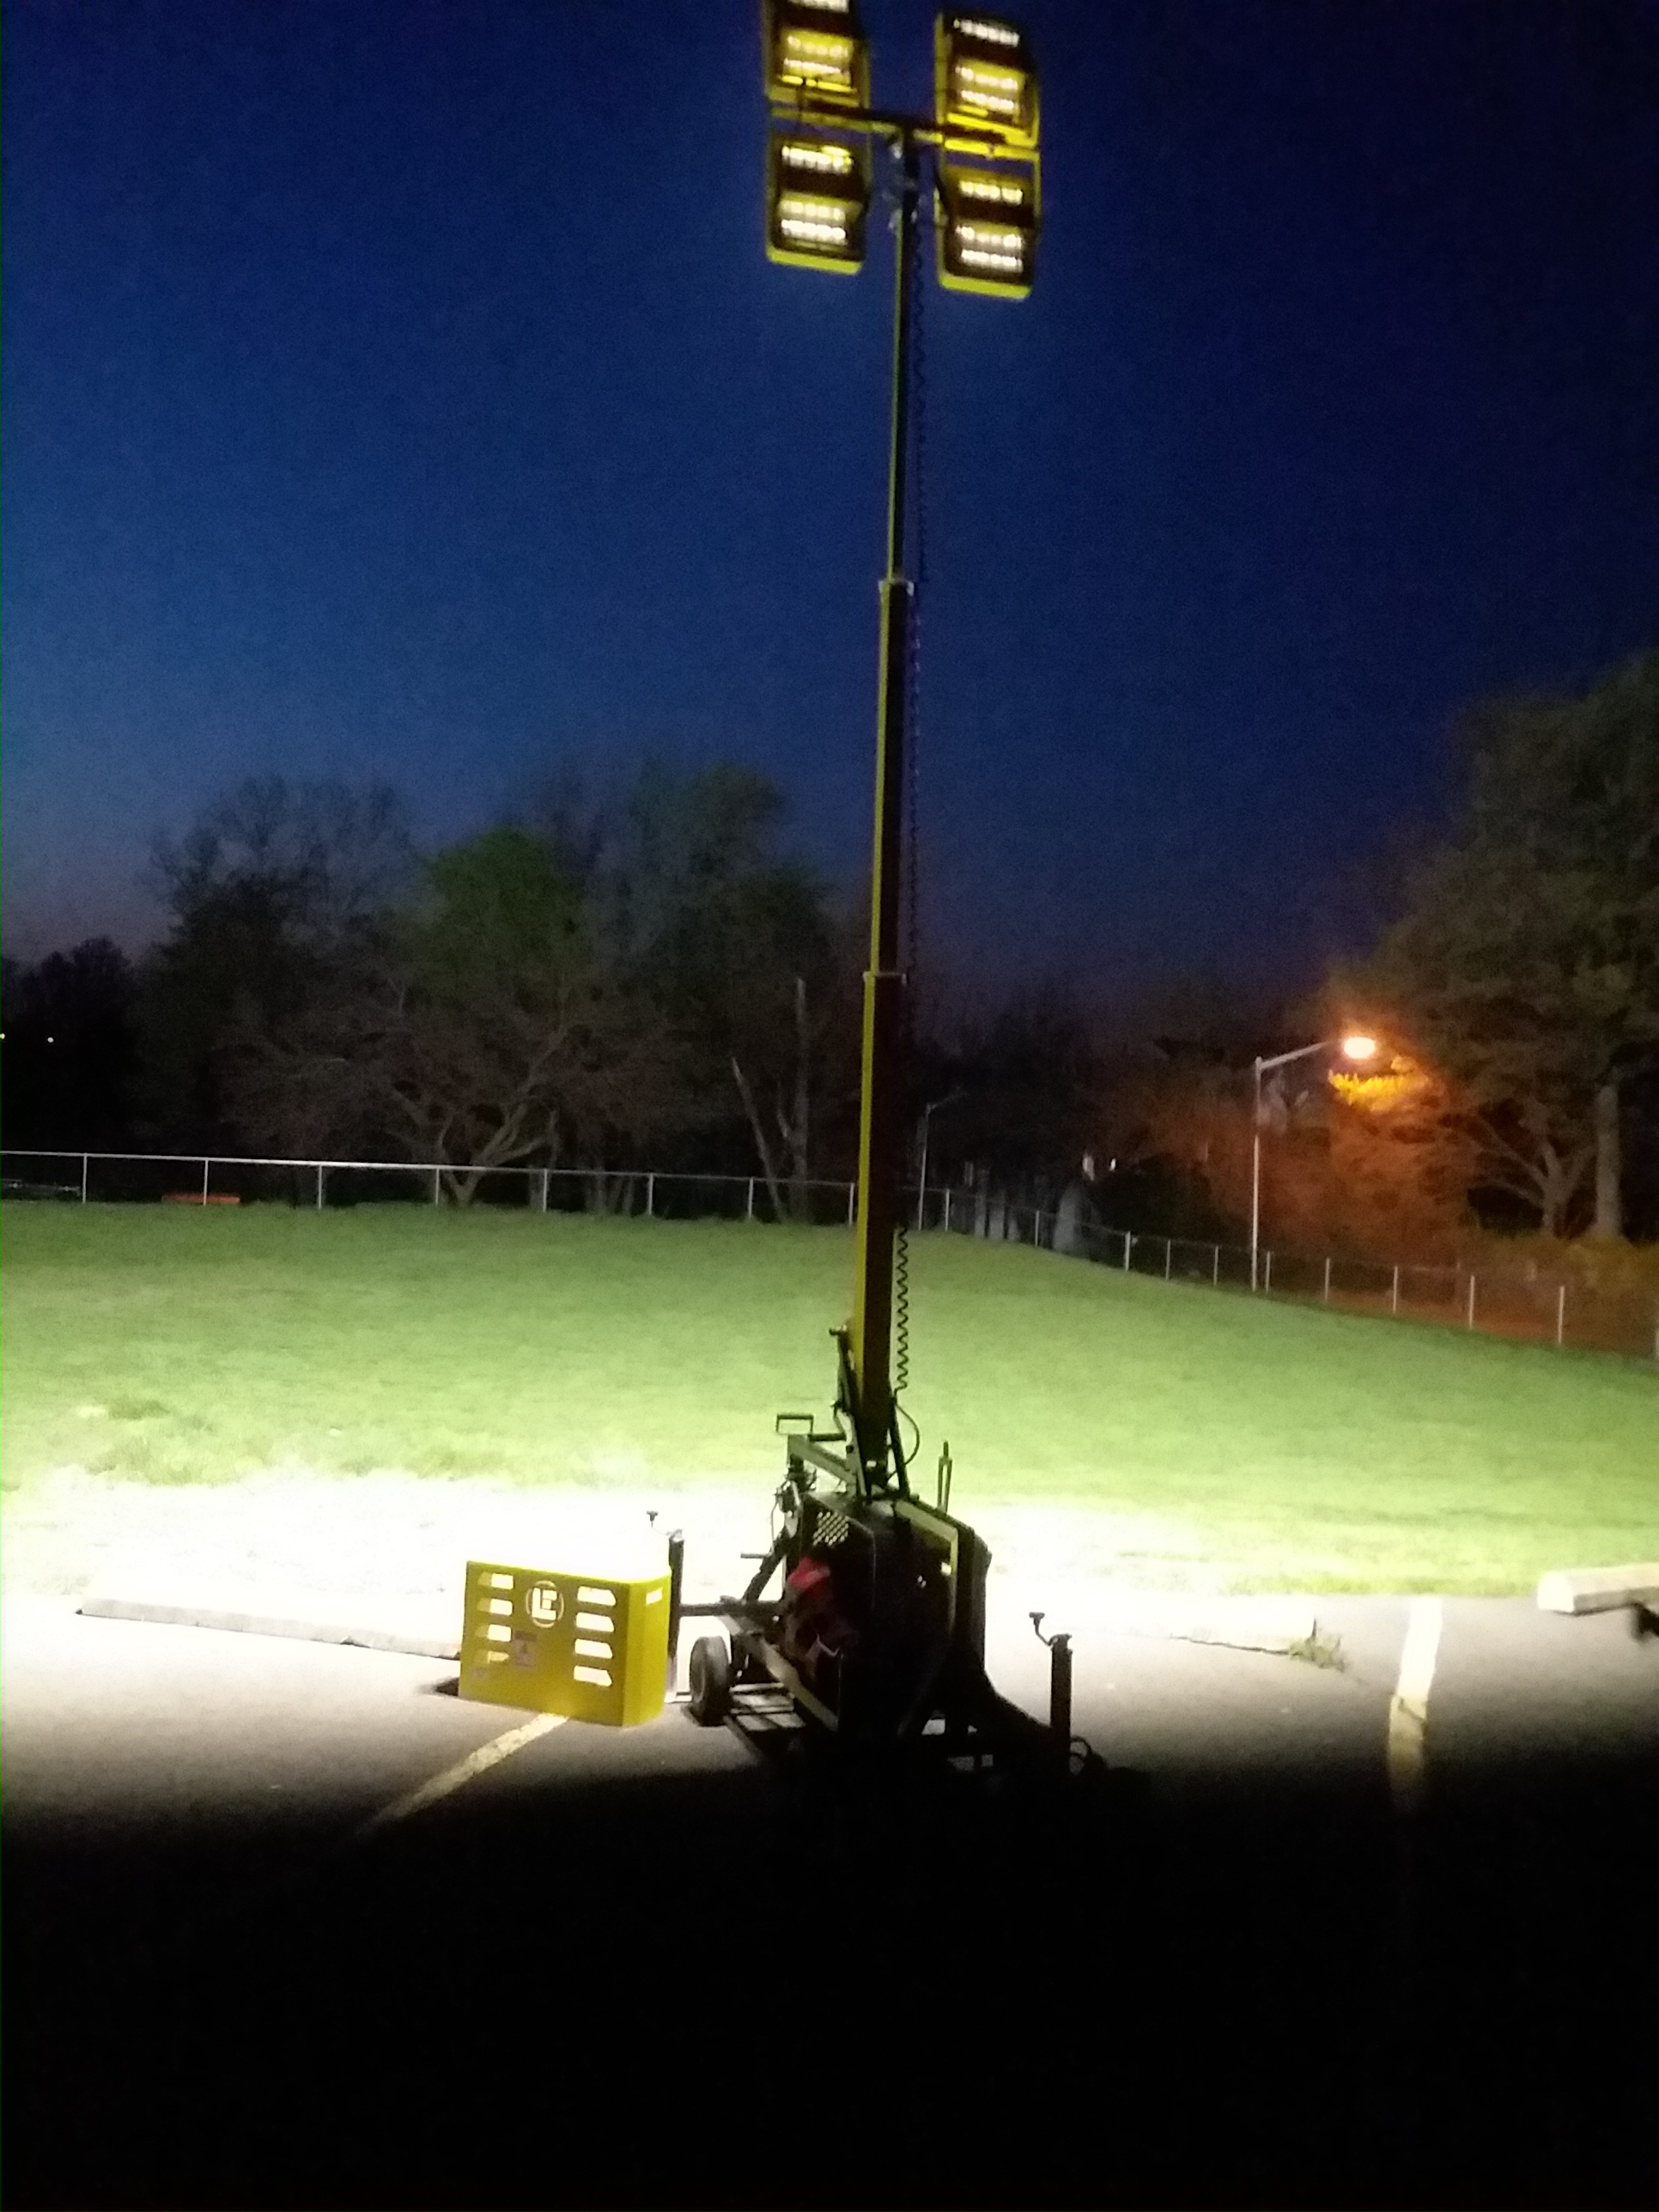 Thank You for filling out a request for our Beacon LED Tower! - Someone will get back to you shortly. If this is urgent please contact 1.877.475.5463 to speak to a representative